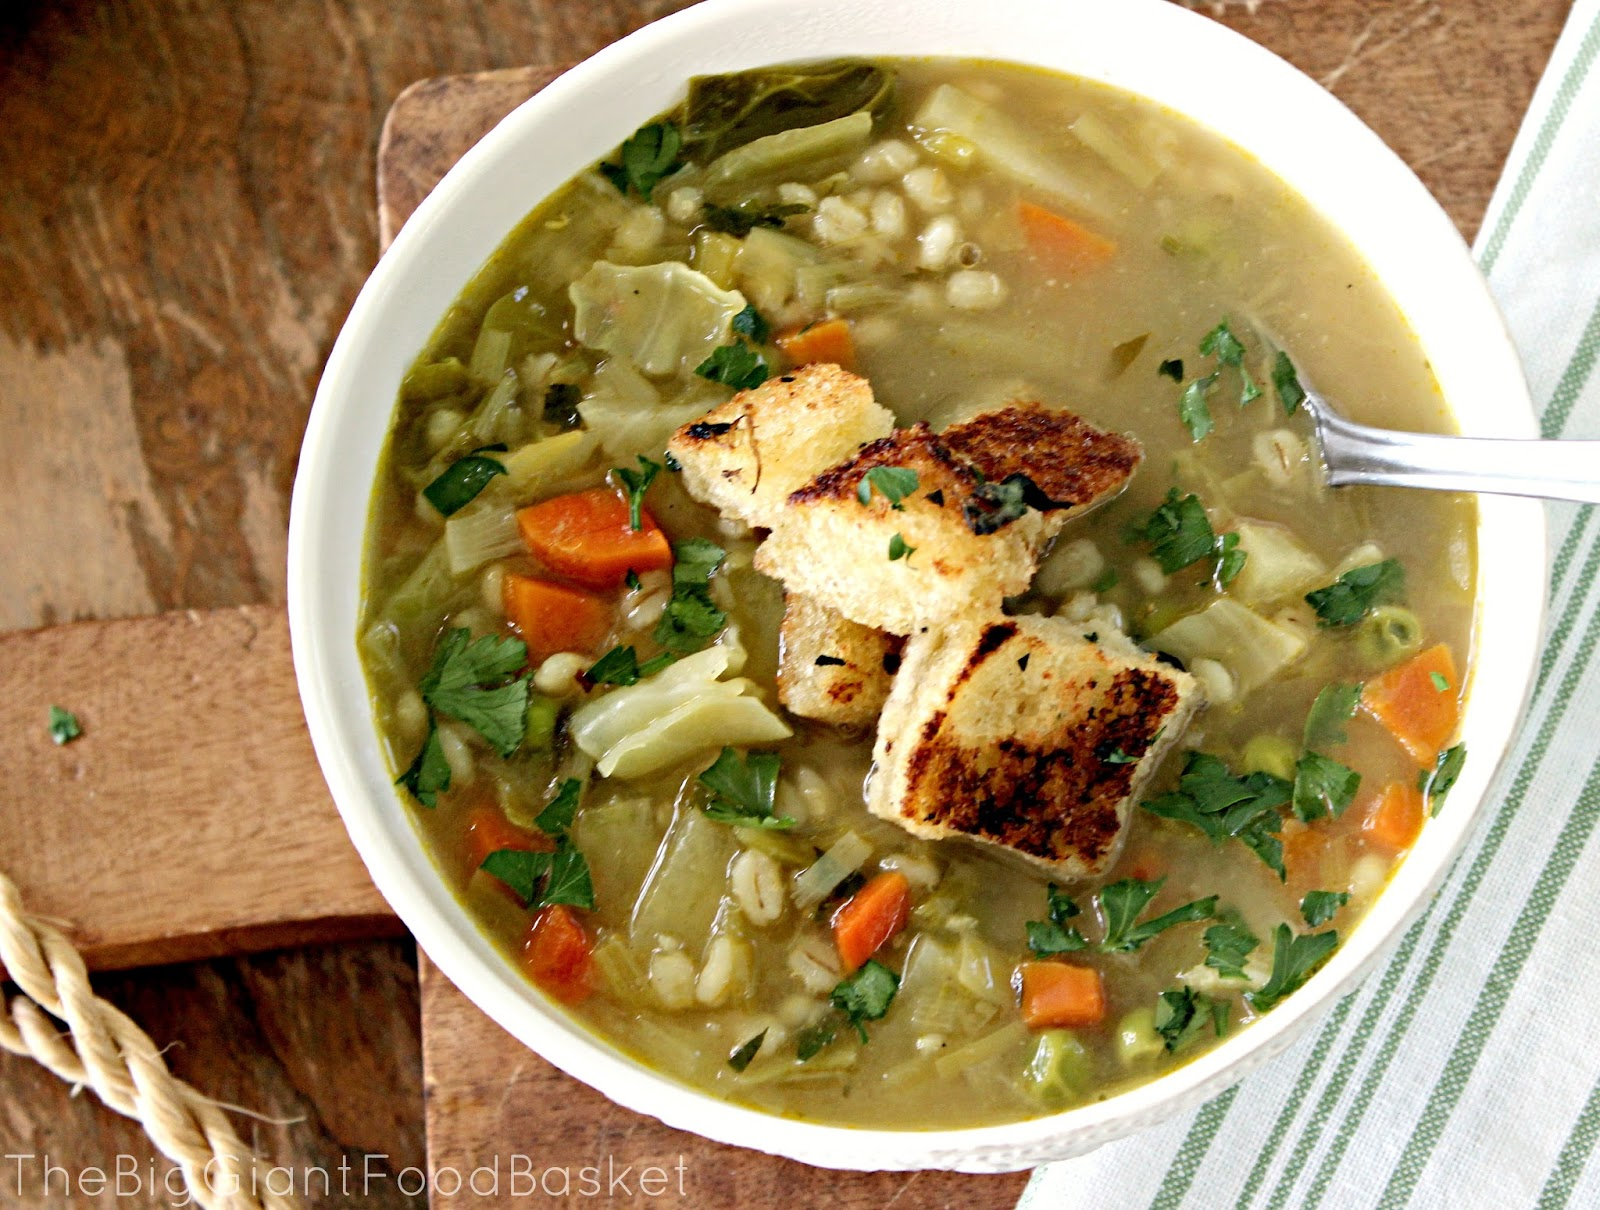 ... Basket: Farmhouse Vegetable and Barley Soup (with homemade croutons